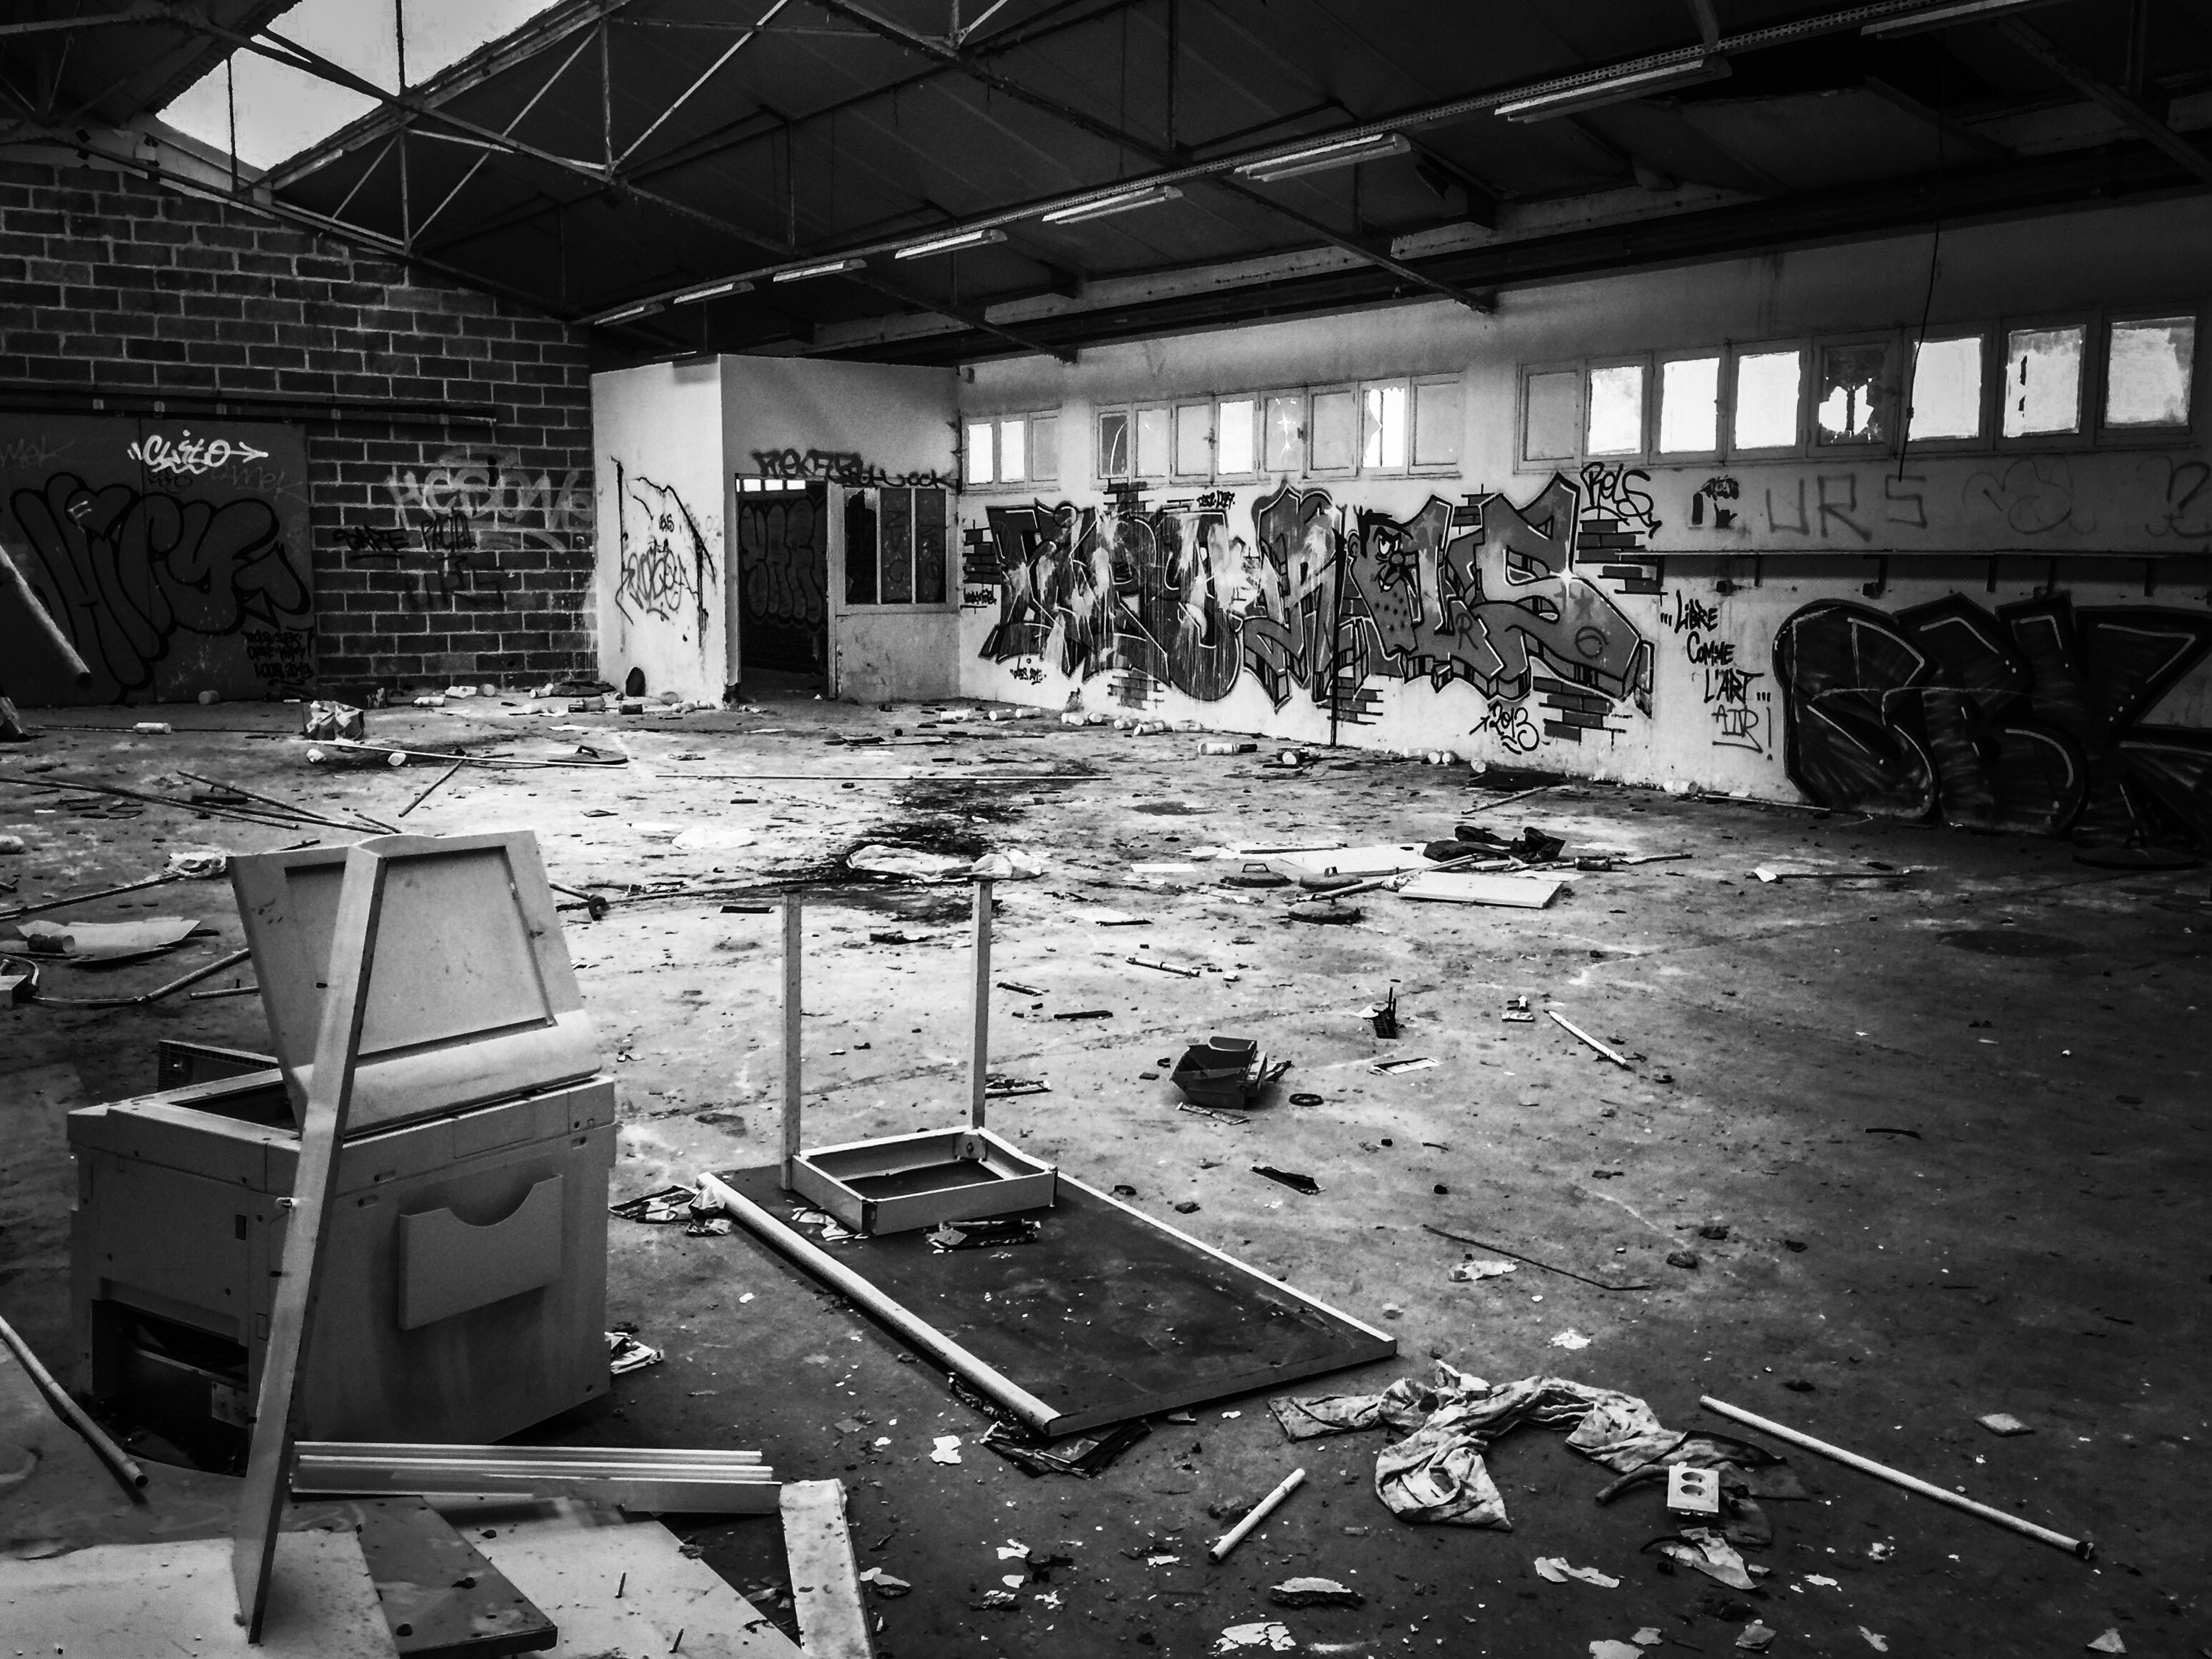 Jail Warehouse Abandoned Indoors  No People Factory Bad Condition Day